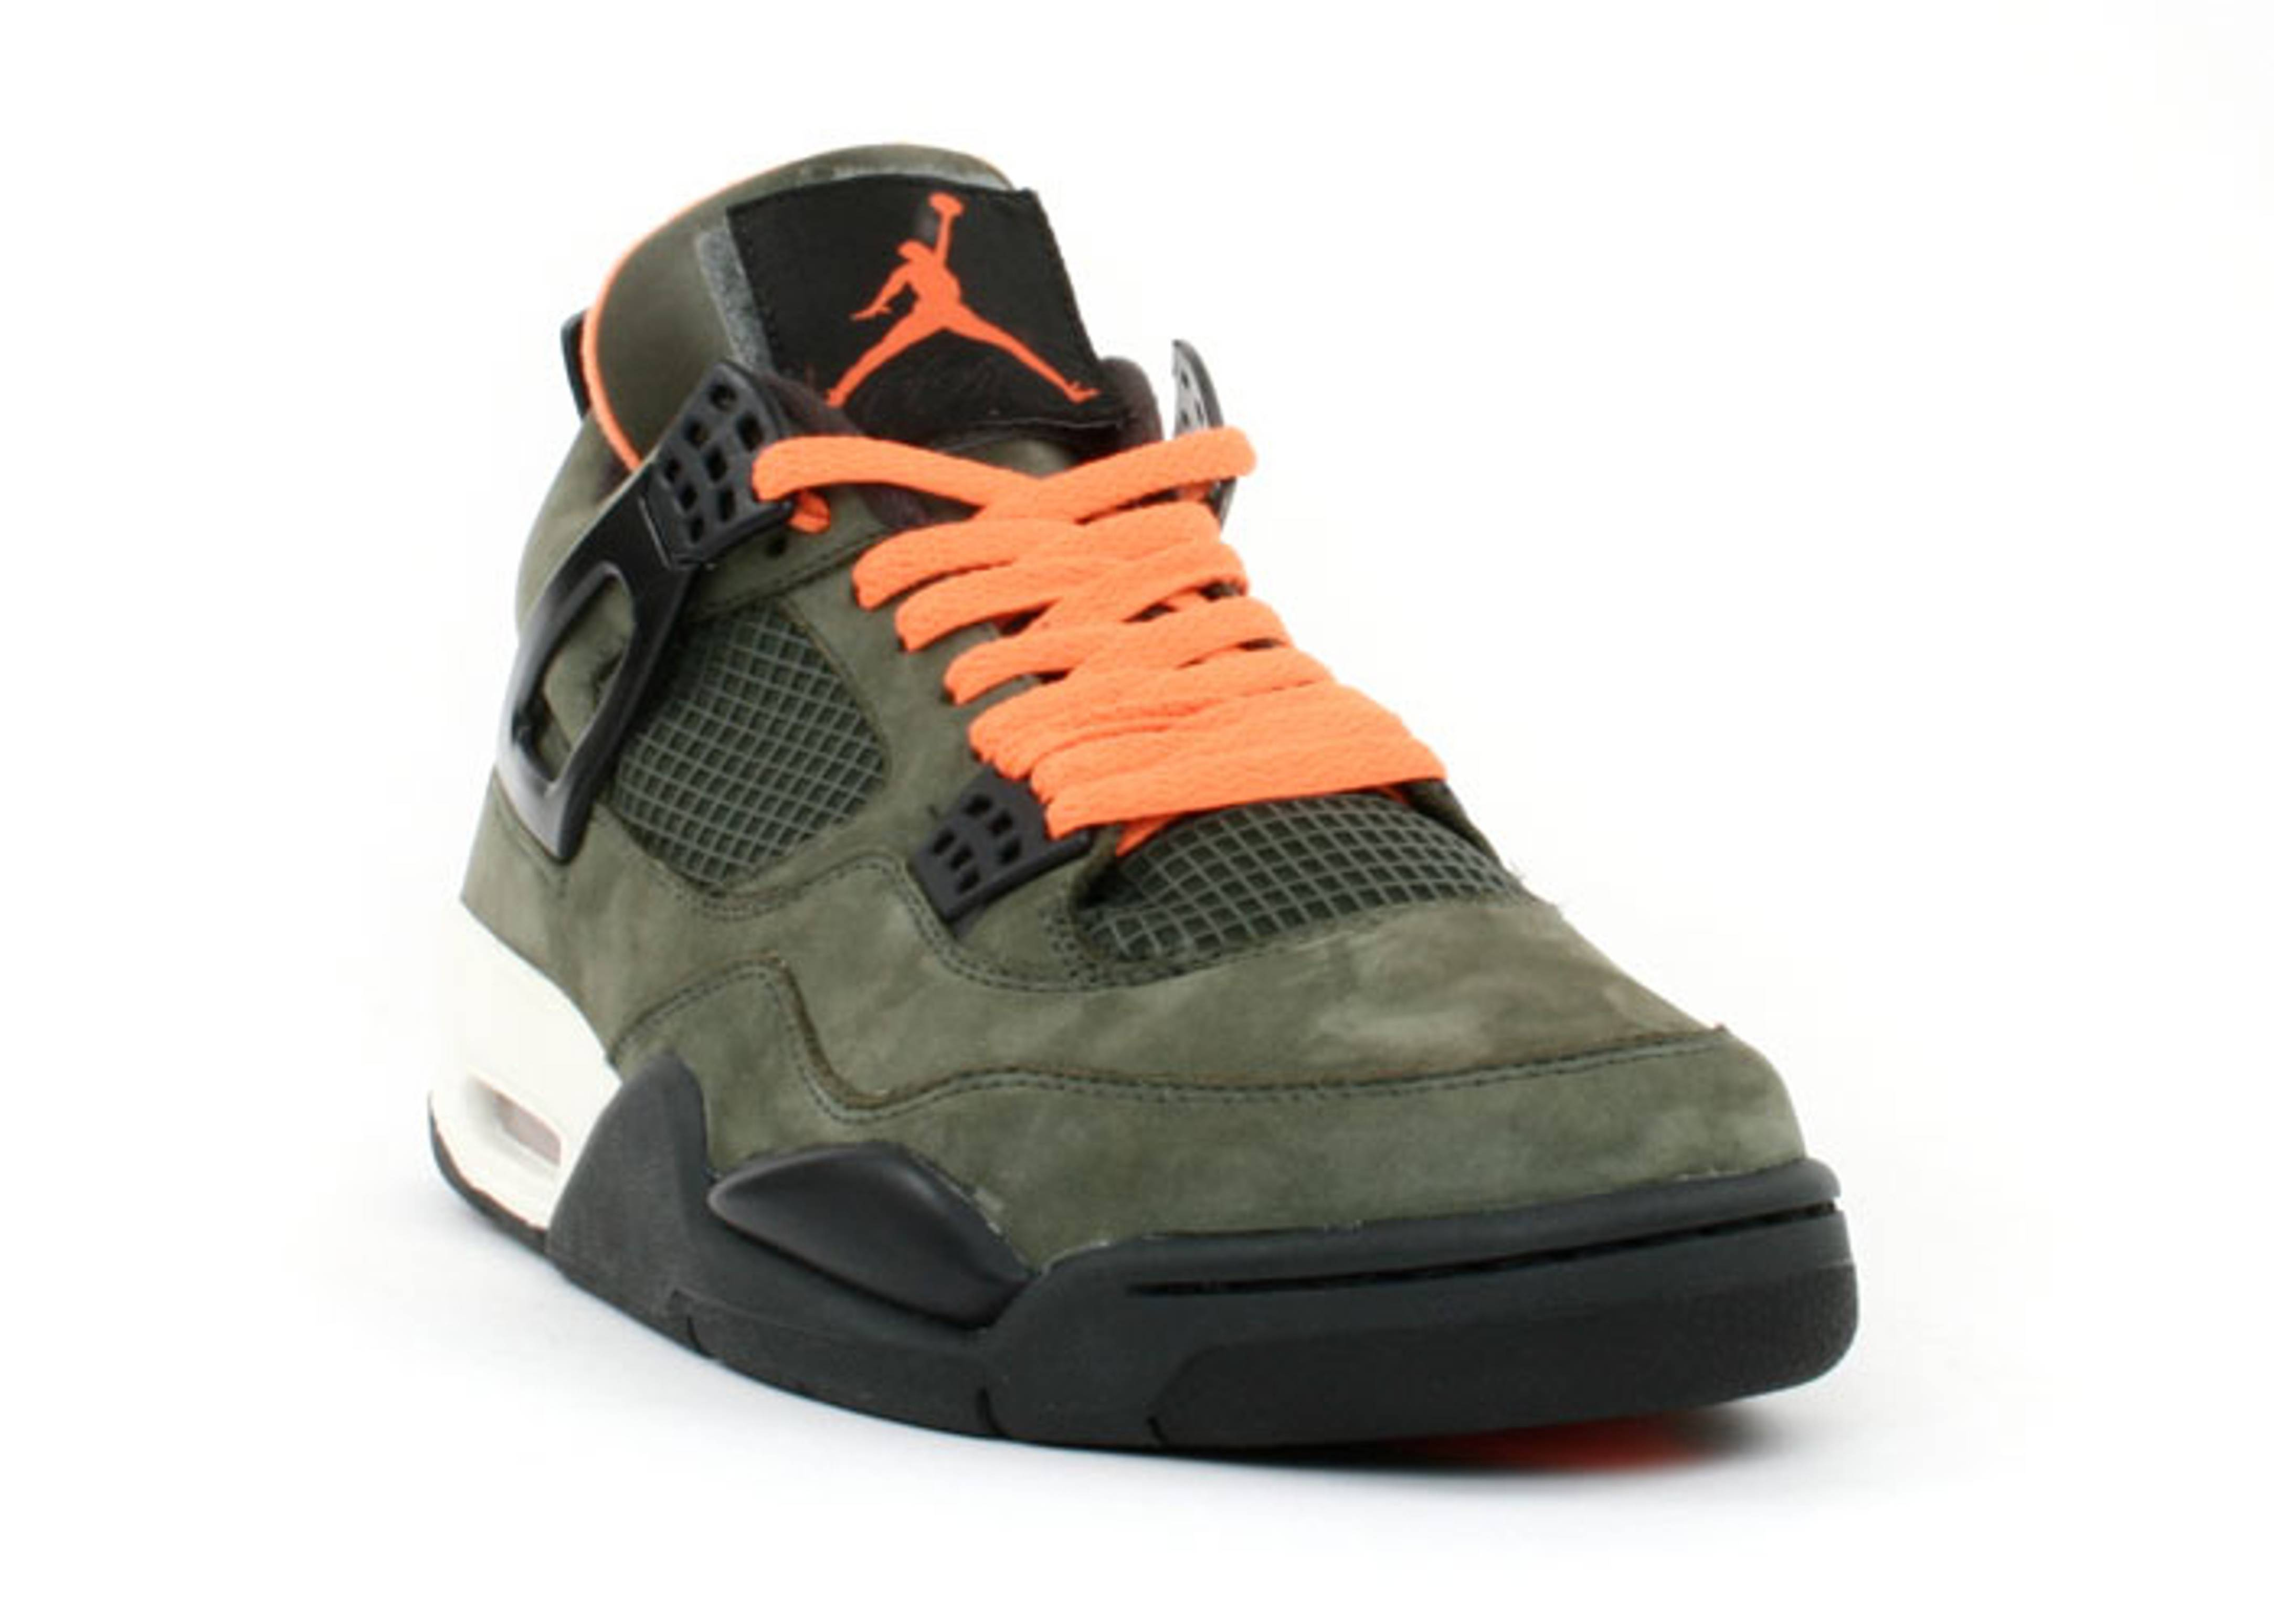 undefeated 4s